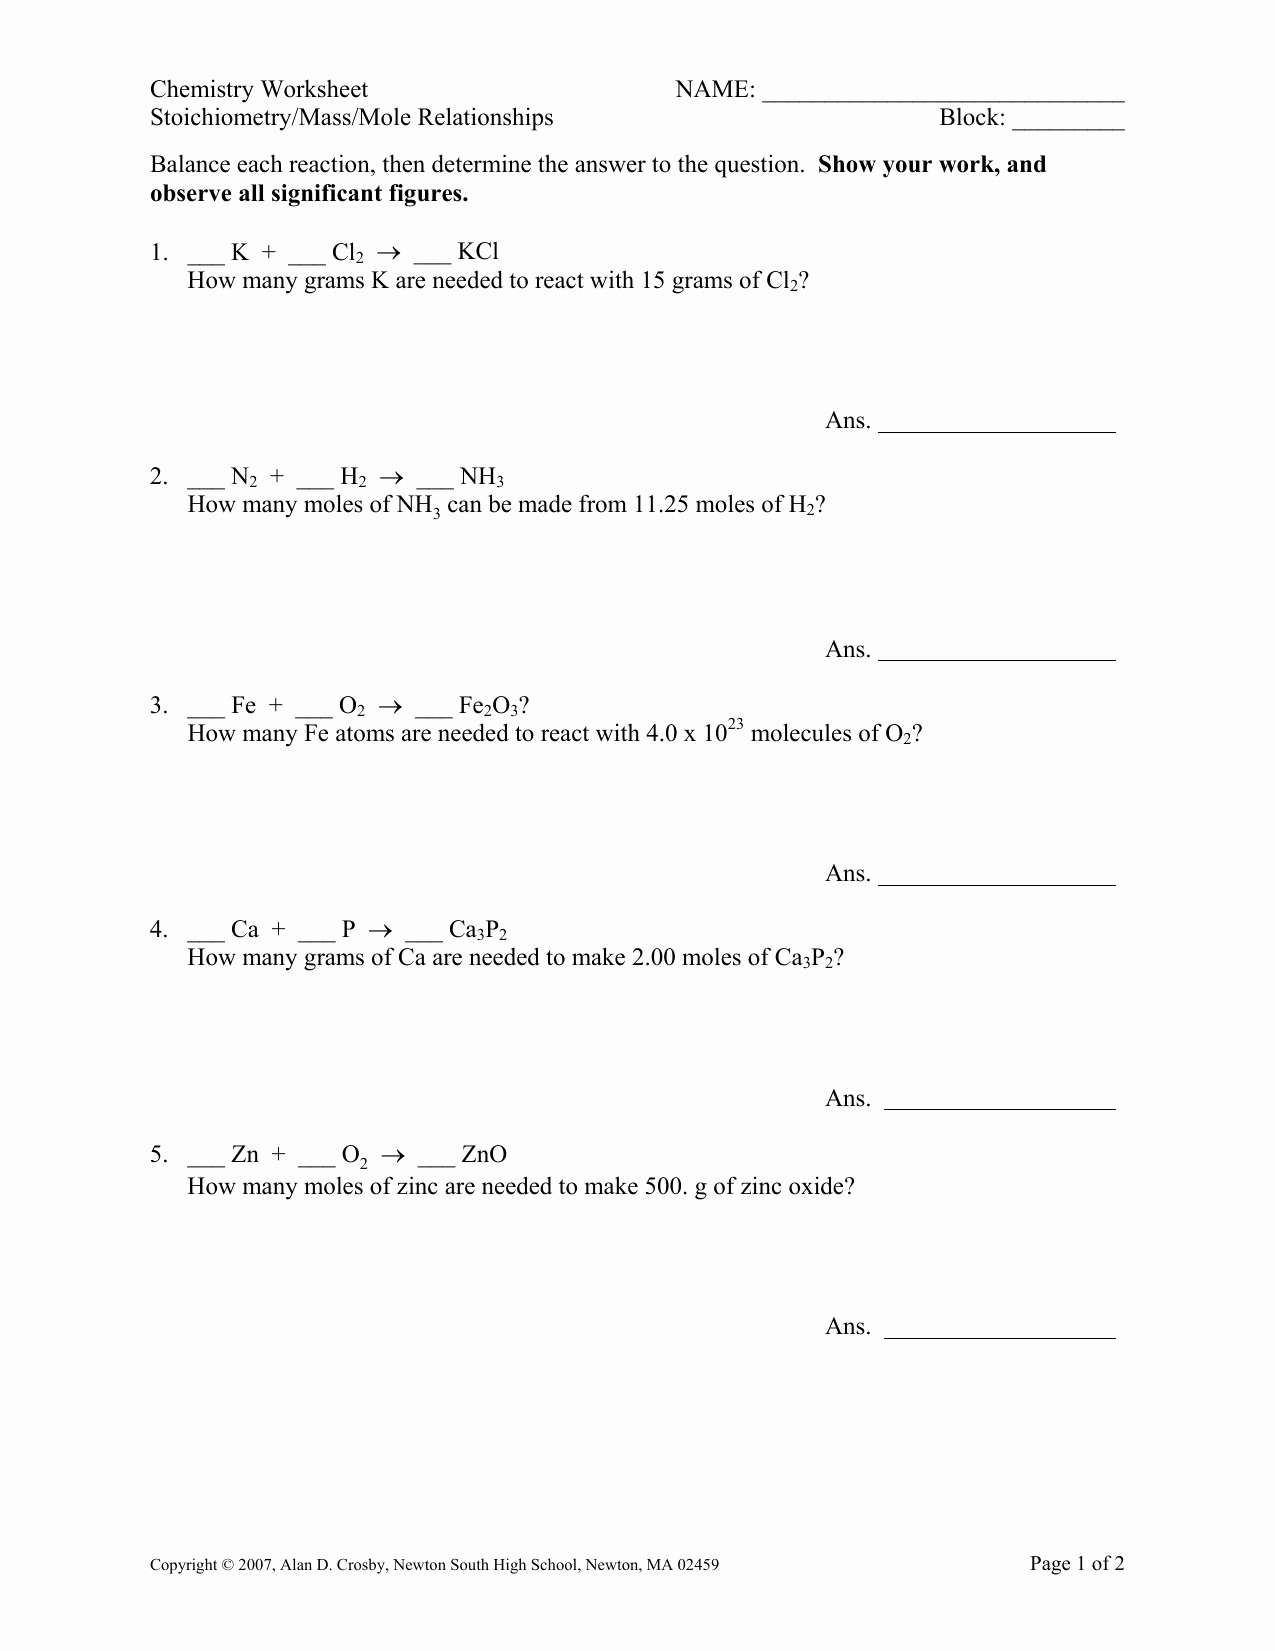 Worksheet Mole Problems Answers Elegant Mole to Mole Stoichiometry Worksheet